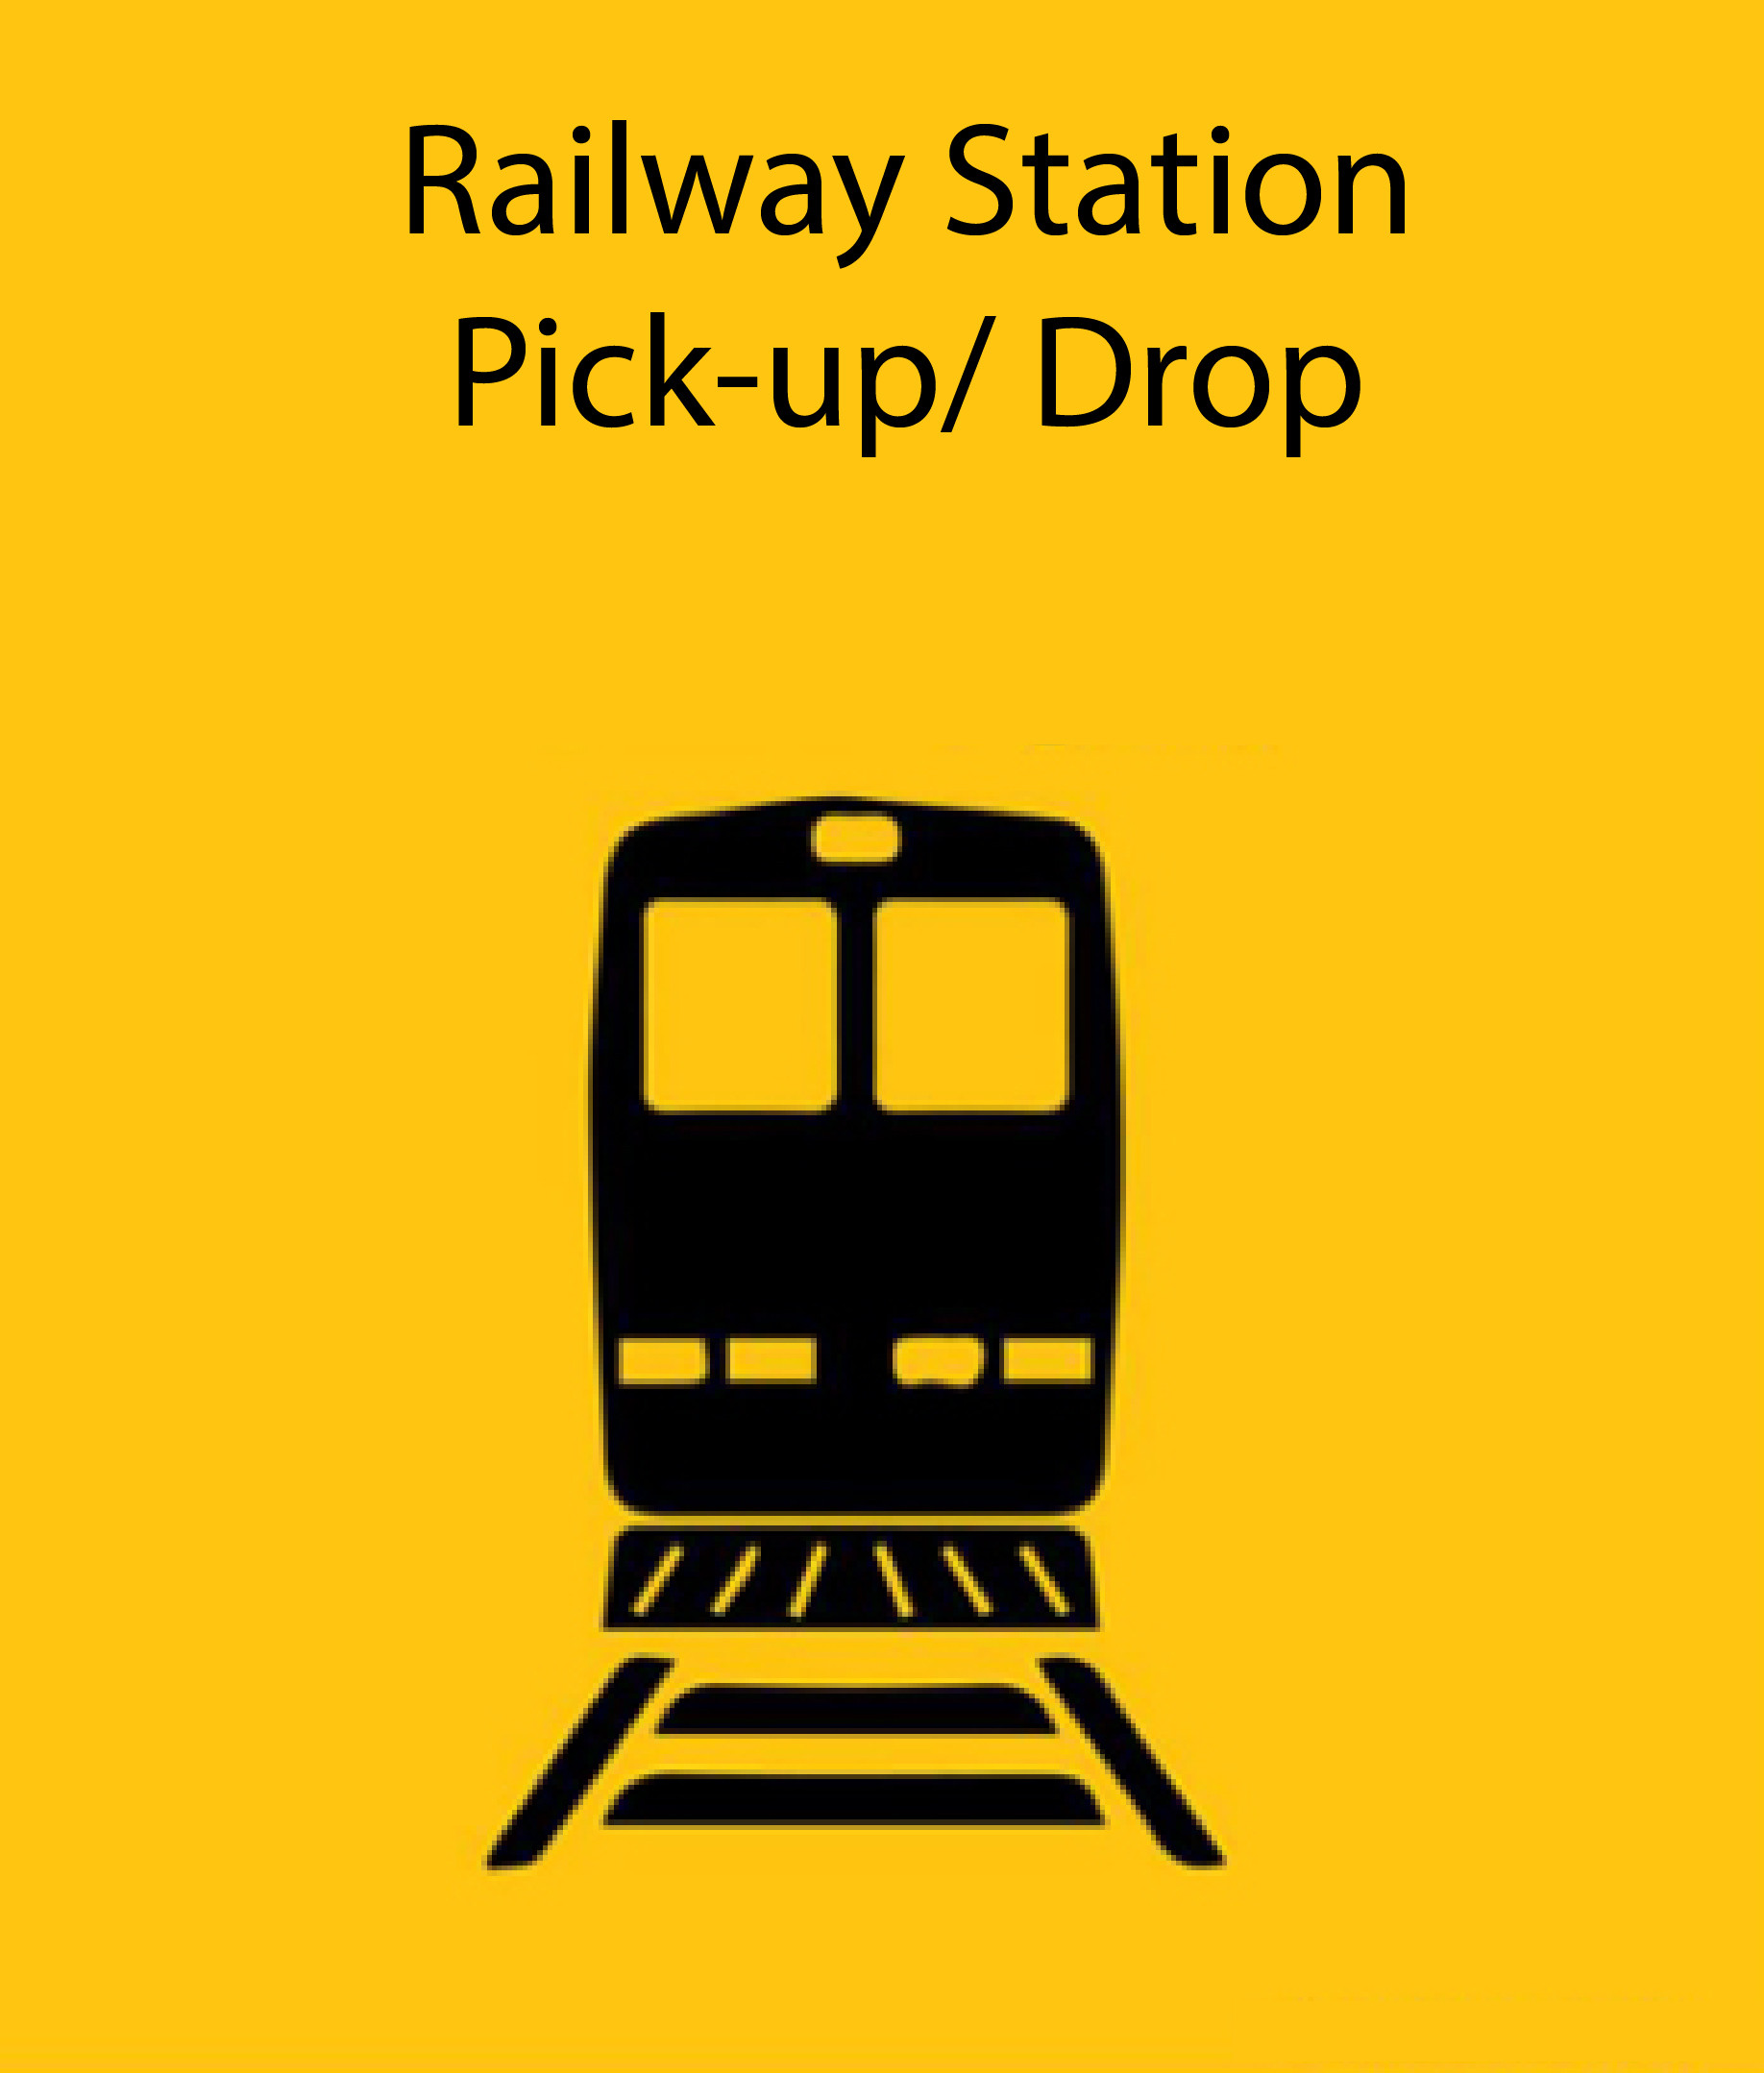 Railway Station Pick-up/Drop 4 Seater